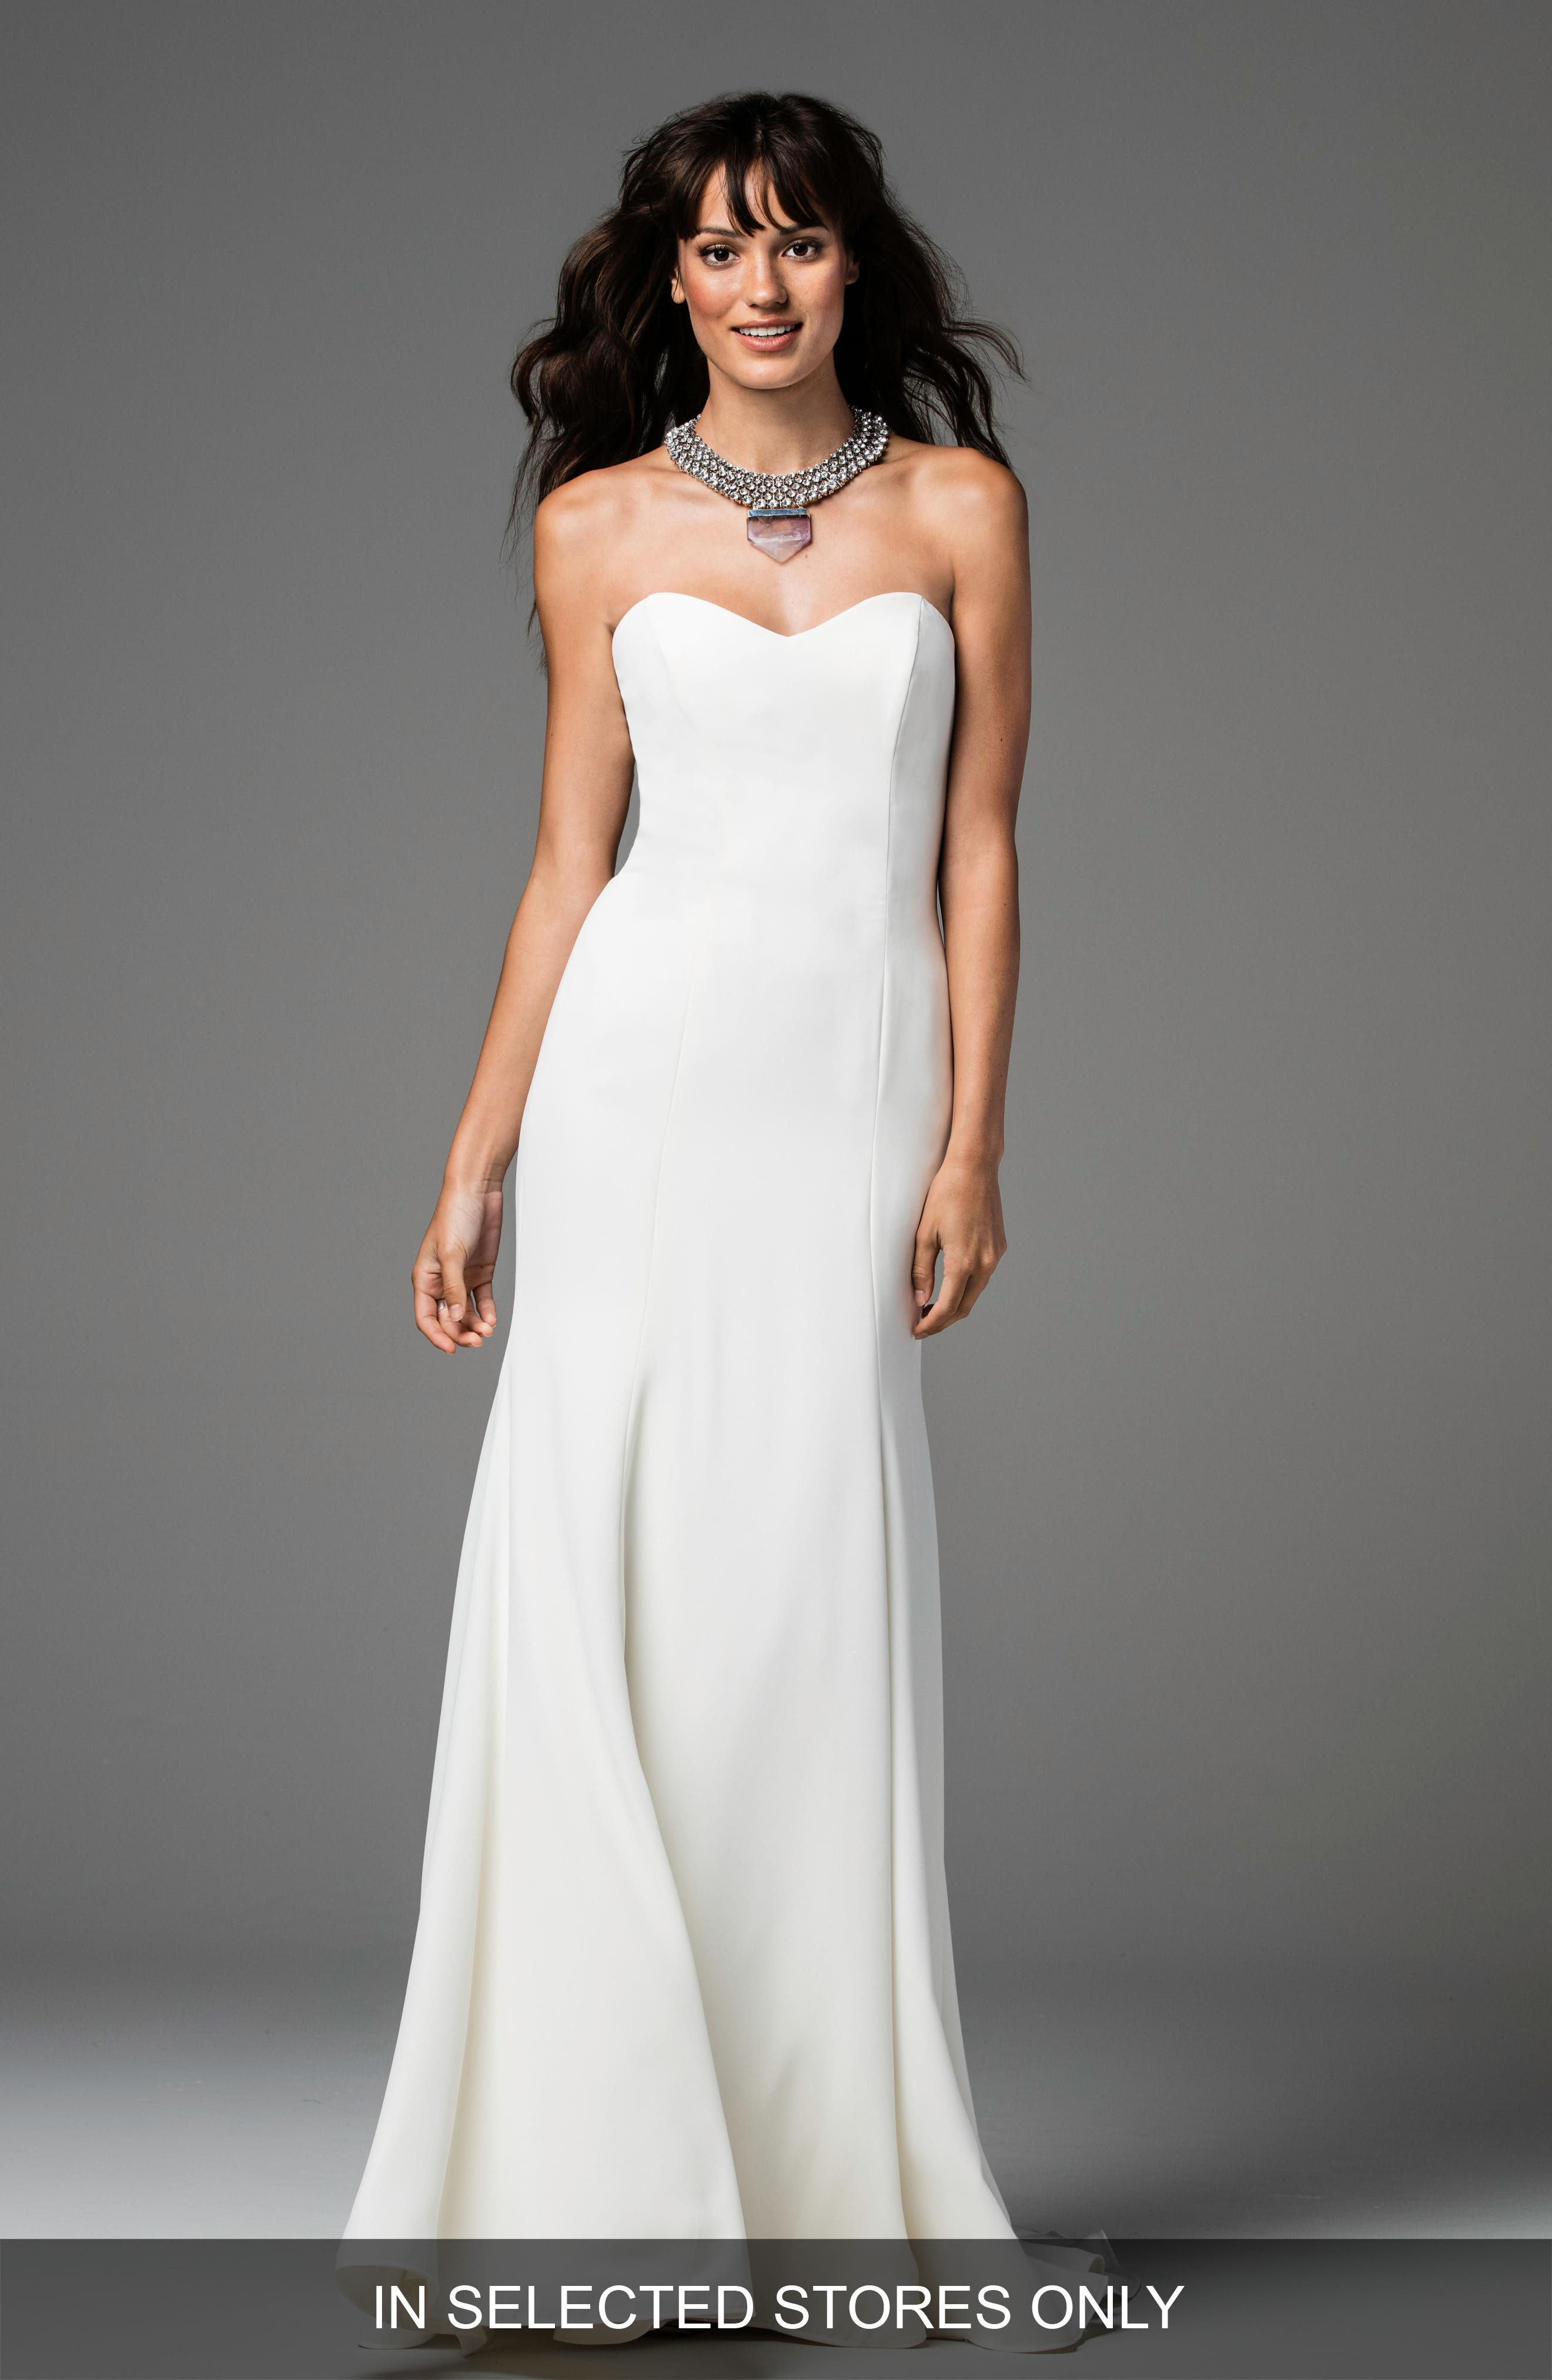 Caspia Strapless Georgette Fit & Flare Gown,                             Main thumbnail 1, color,                             IVORY/IVORY